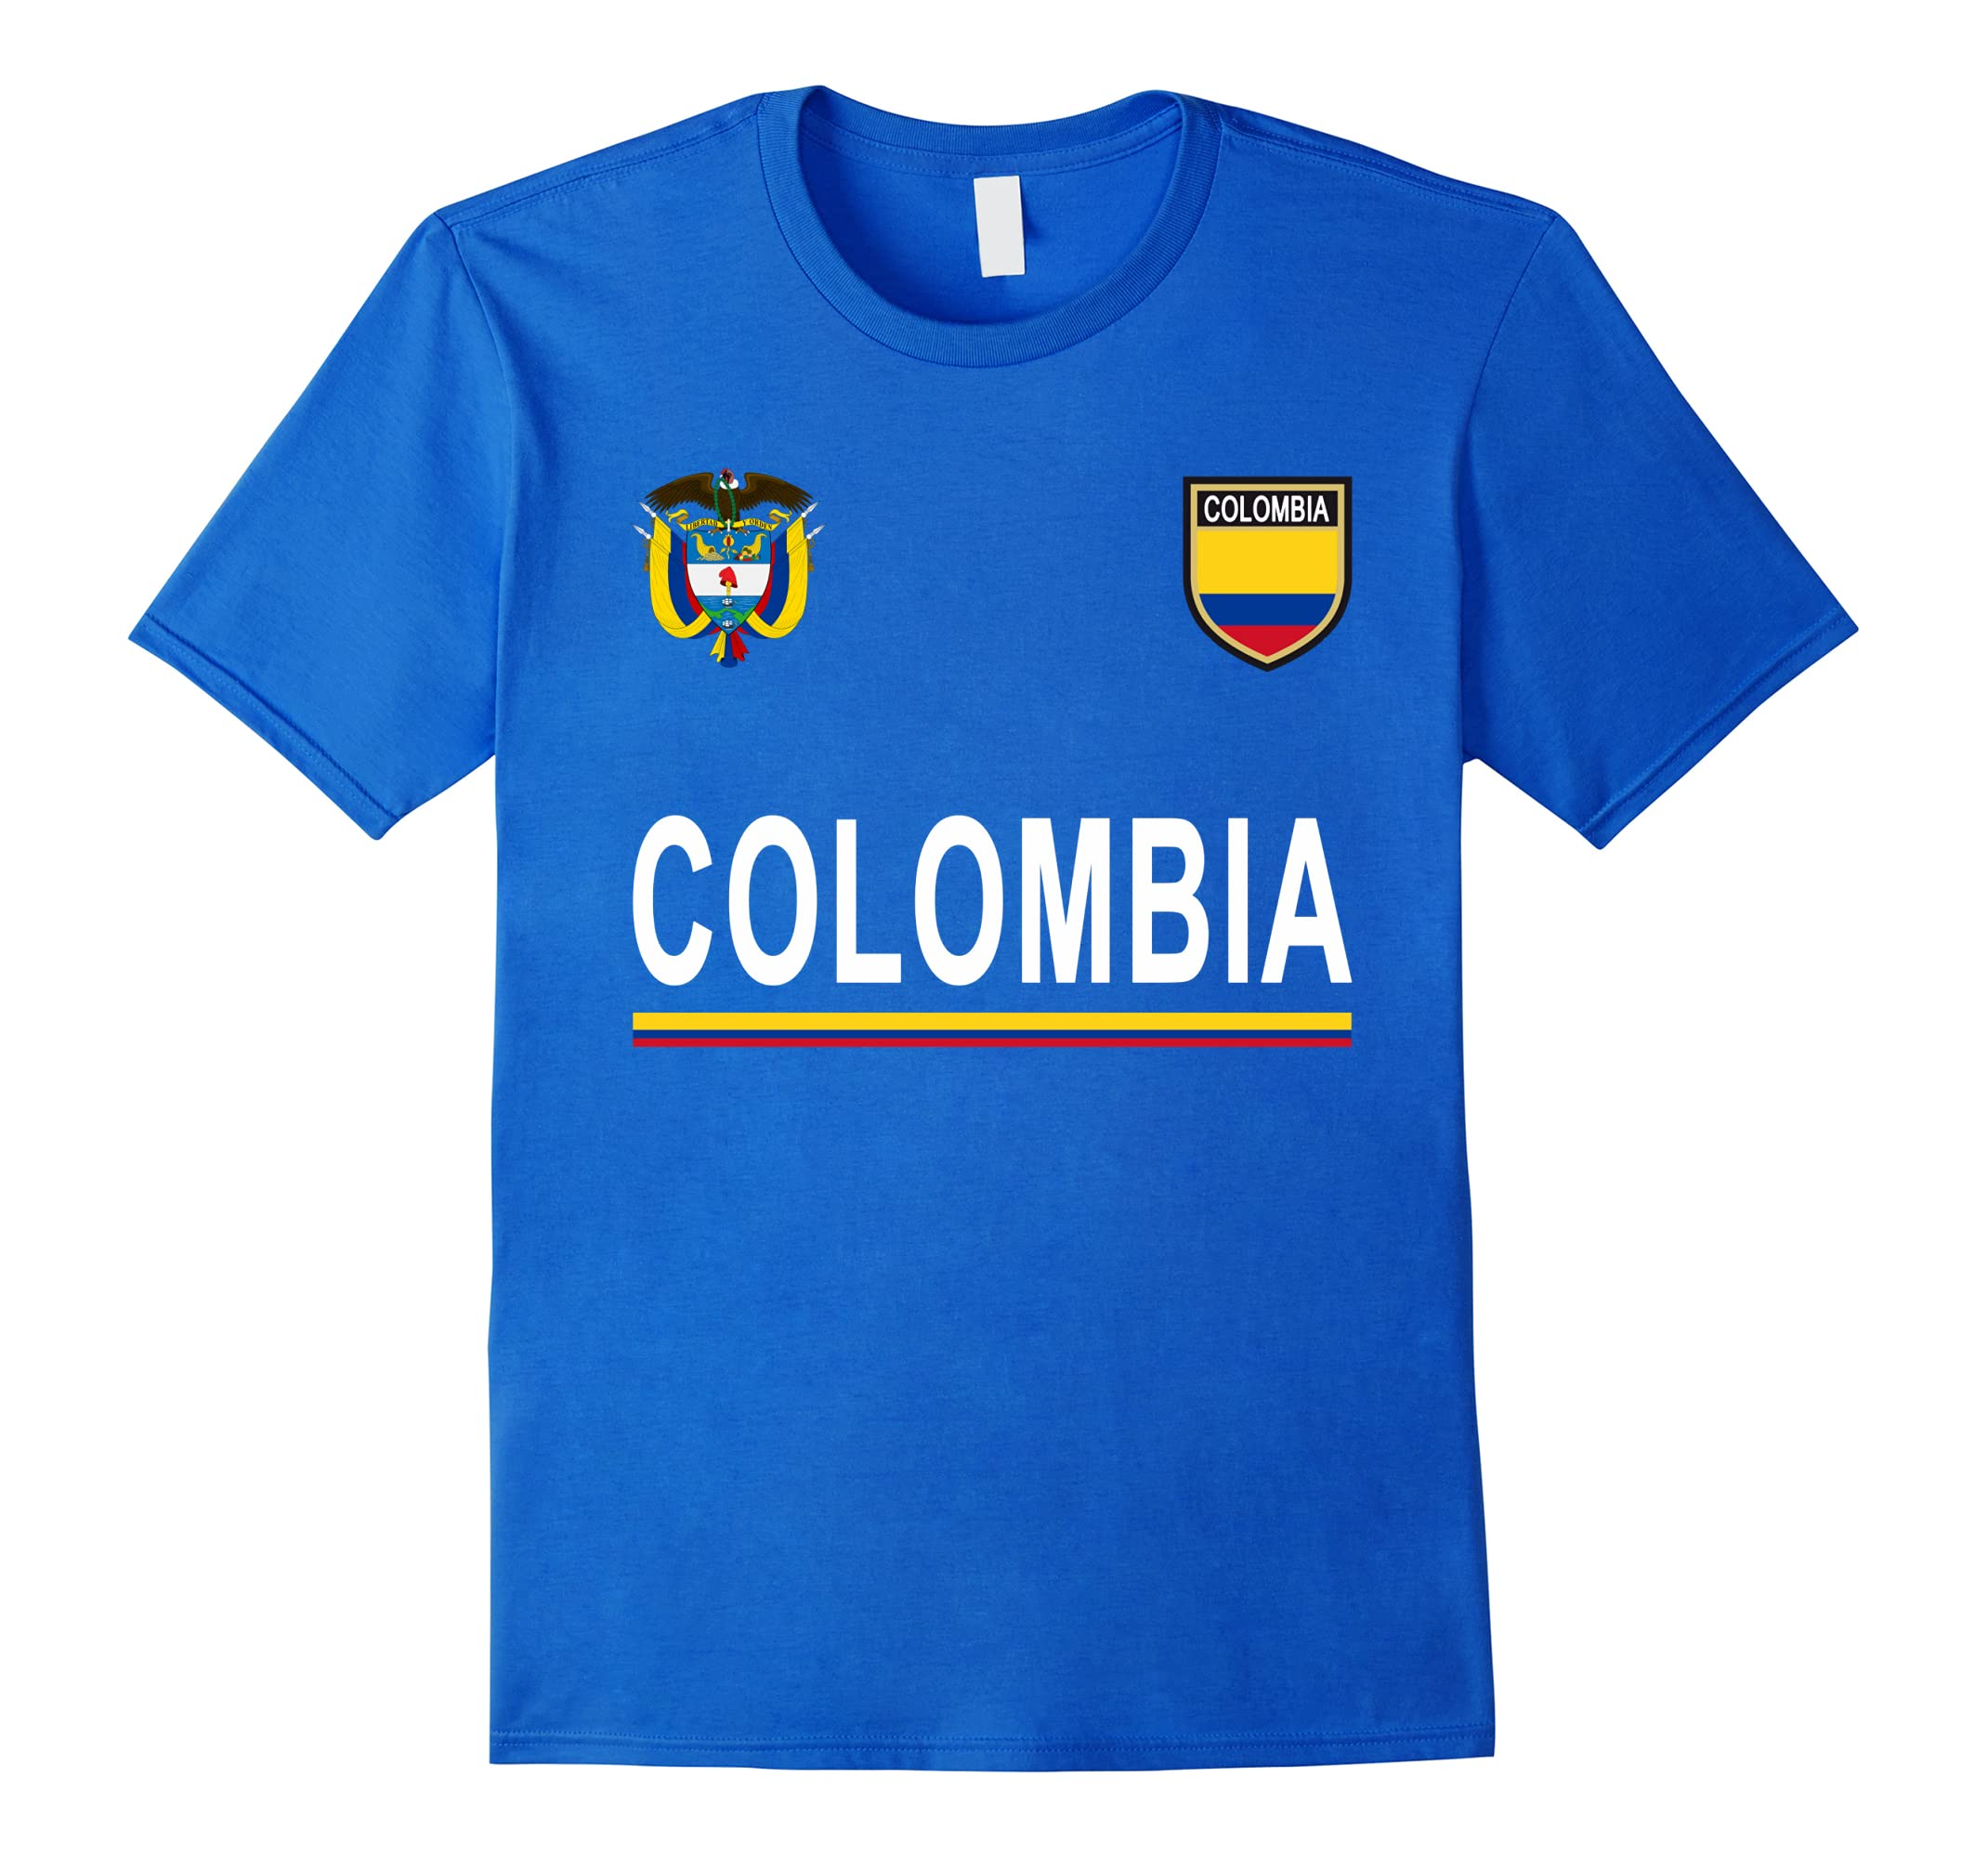 Colombia Cheer Jersey 2018 - Football Colombian T-Shirt-ah my shirt one gift 3a1eeaa97